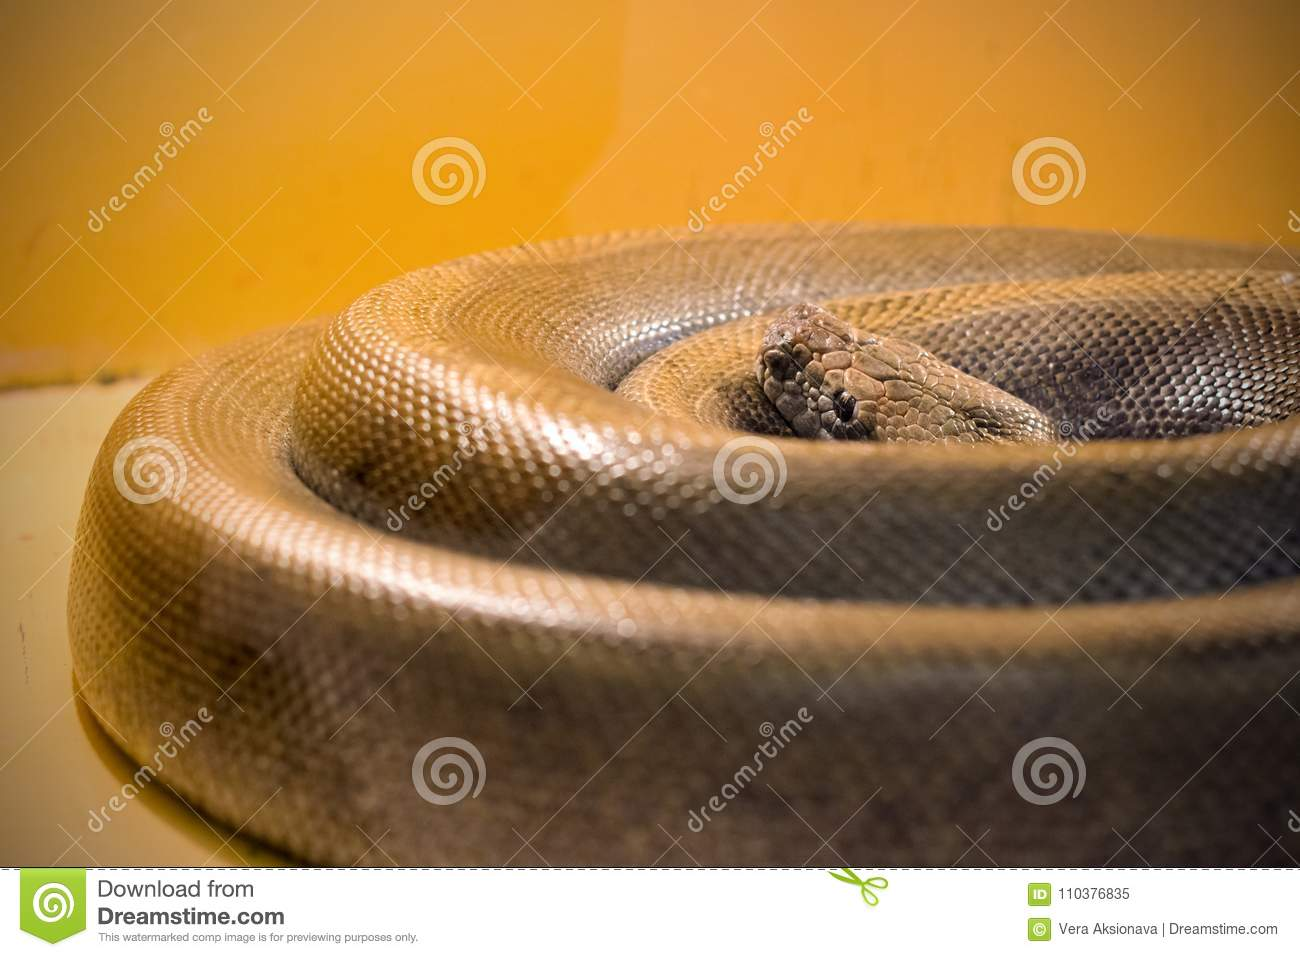 The big snake curled into a ring